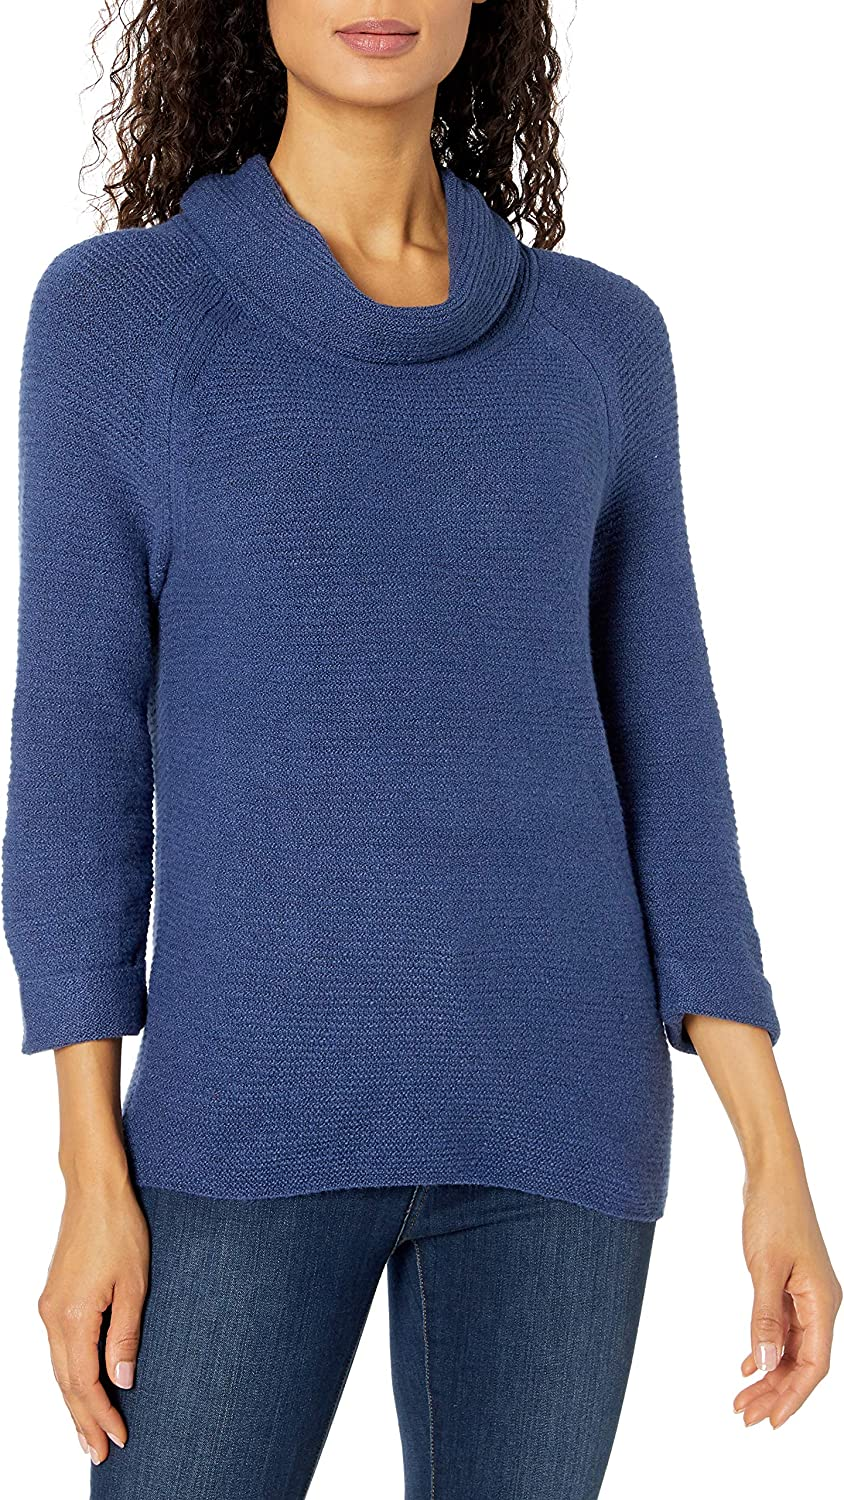 Leo /& Nicole Womens 3//4 Slv Cowl Neck Textured Pullover Sweater